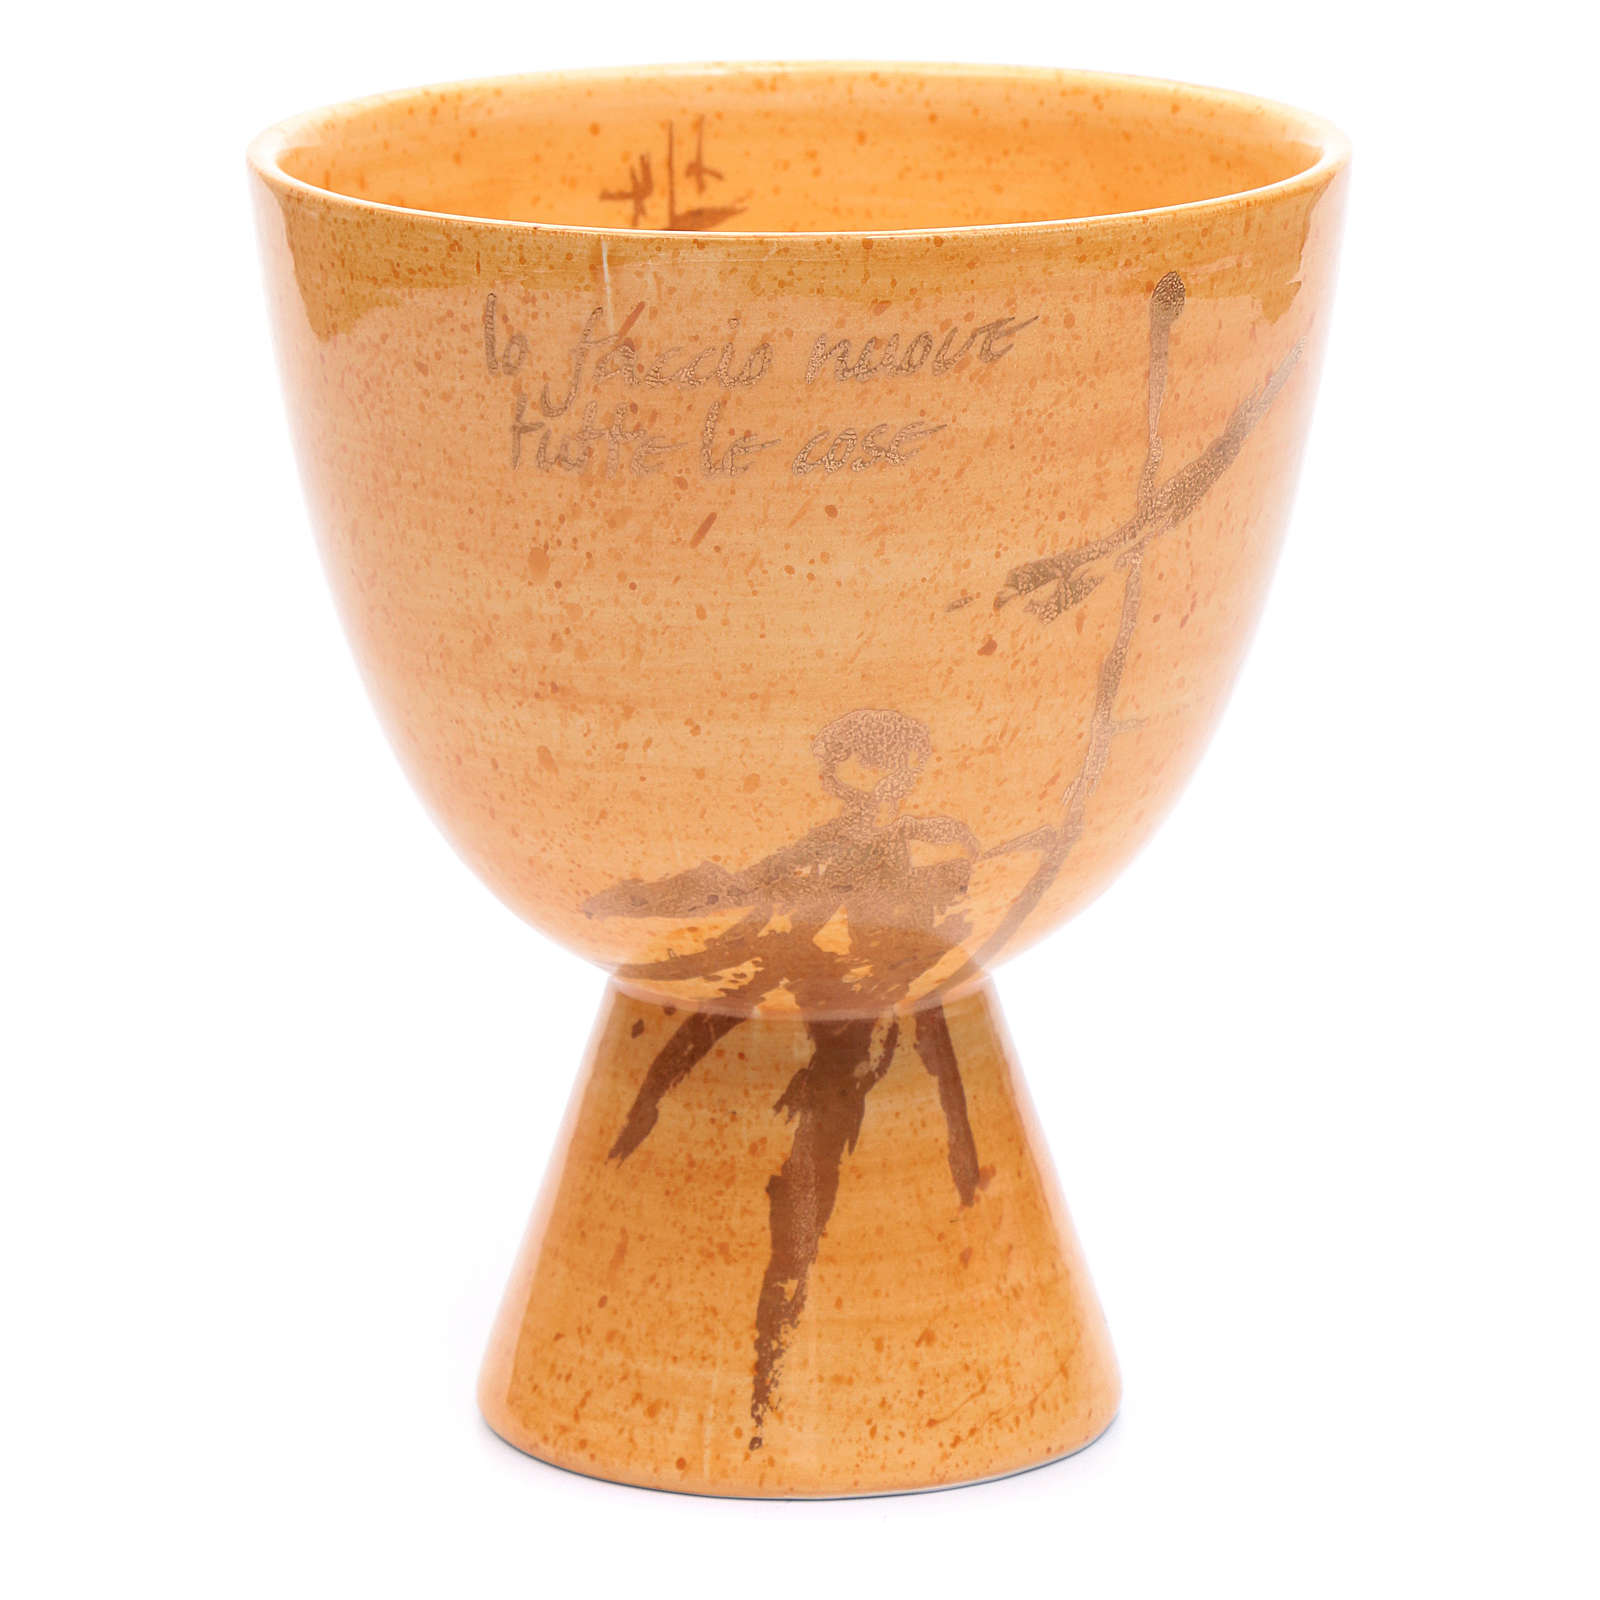 Chalice in beige ceramic, cup 4